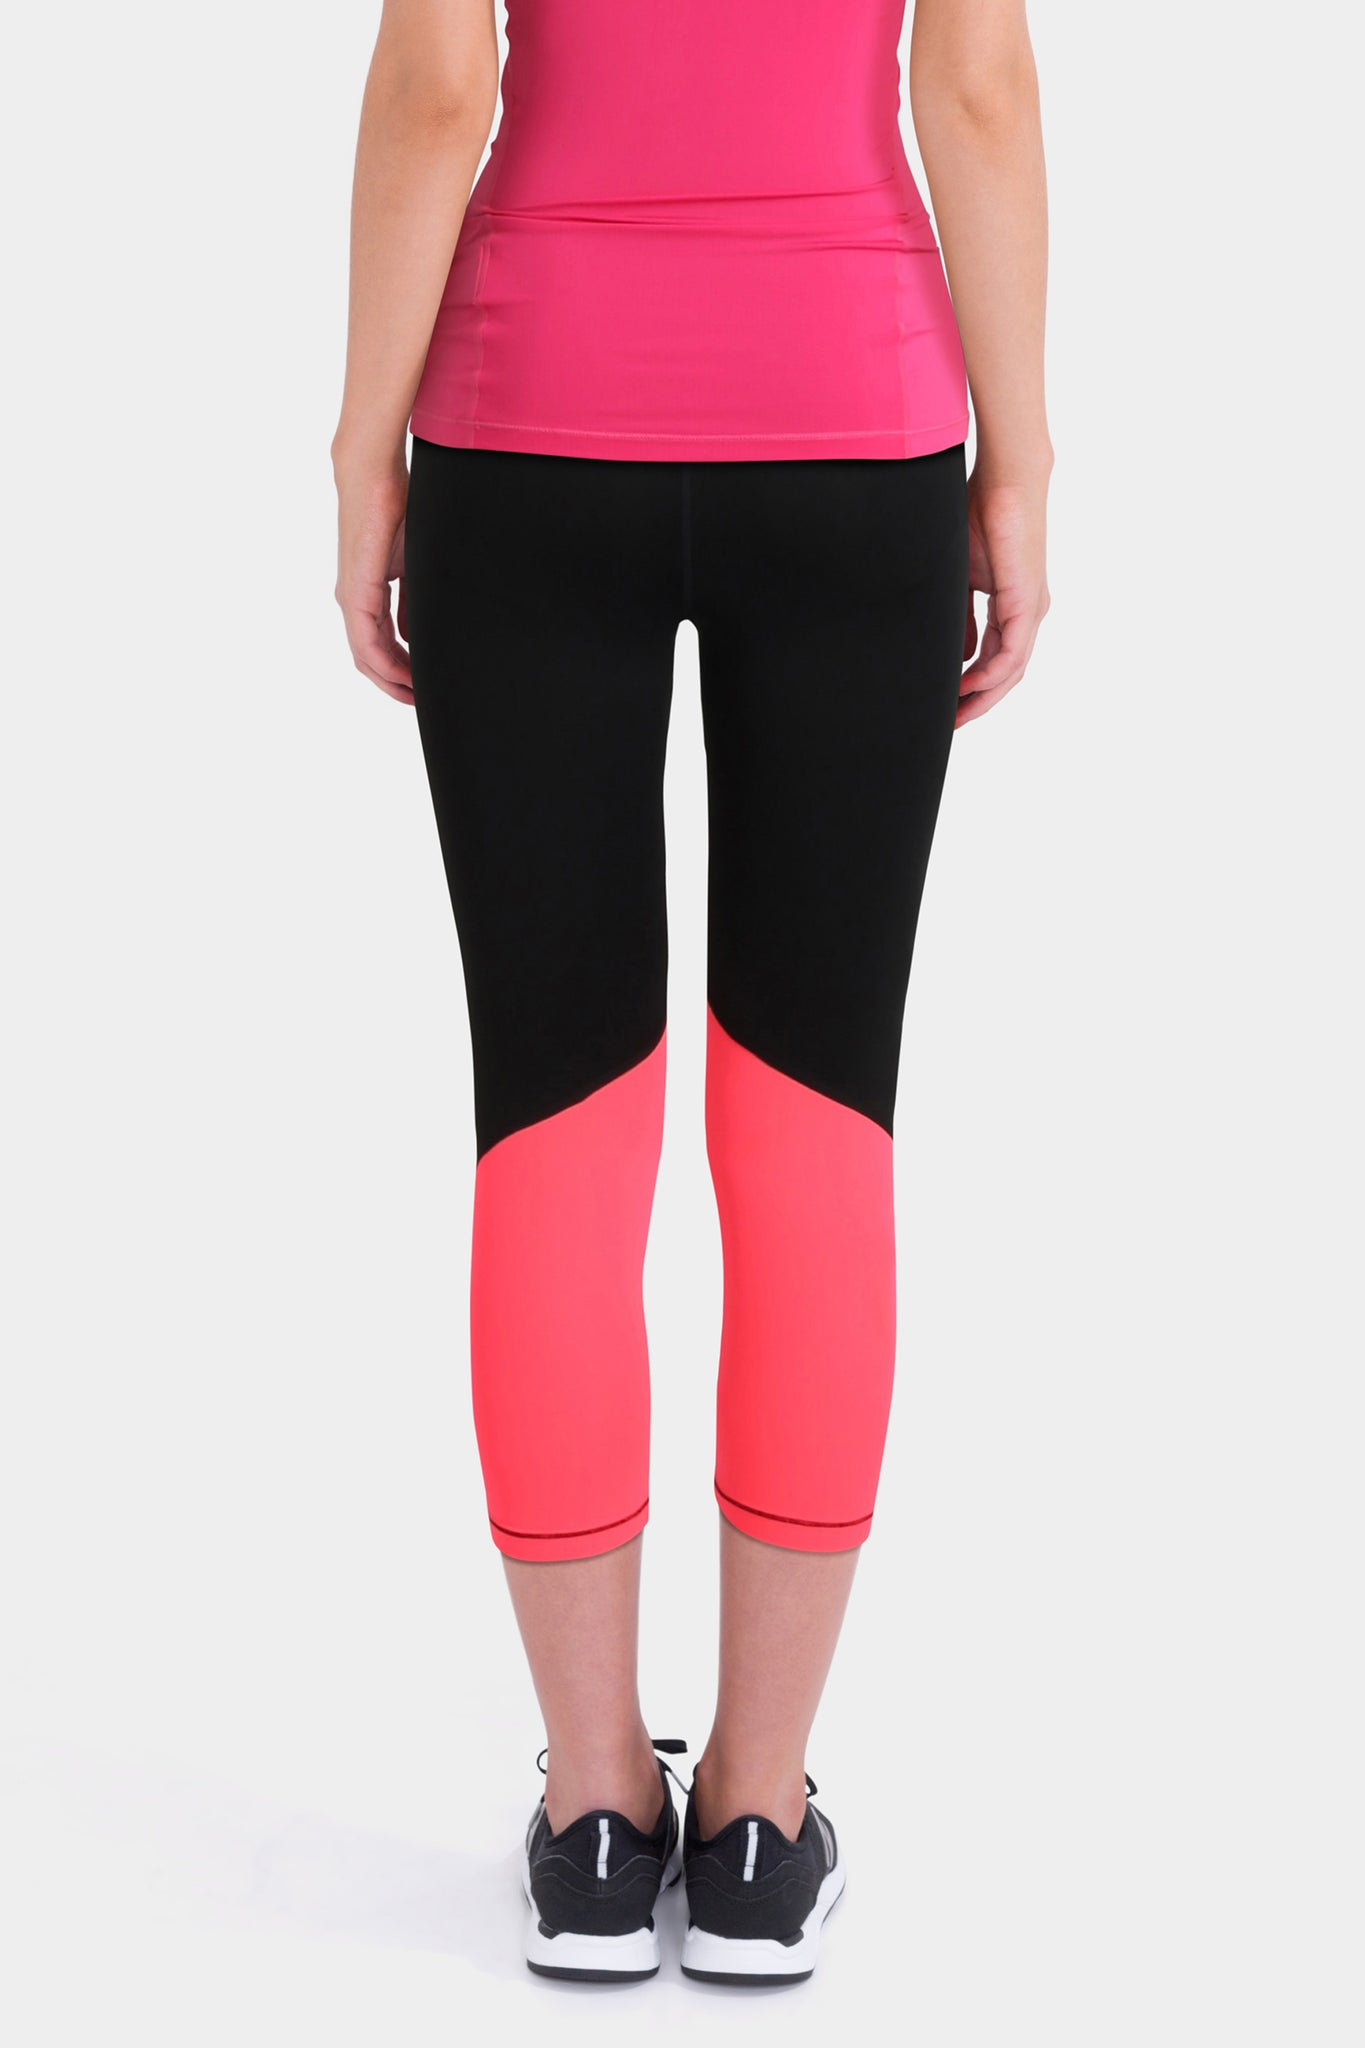 Nike Pro Training Capri Legging In Black With Pink Waistband